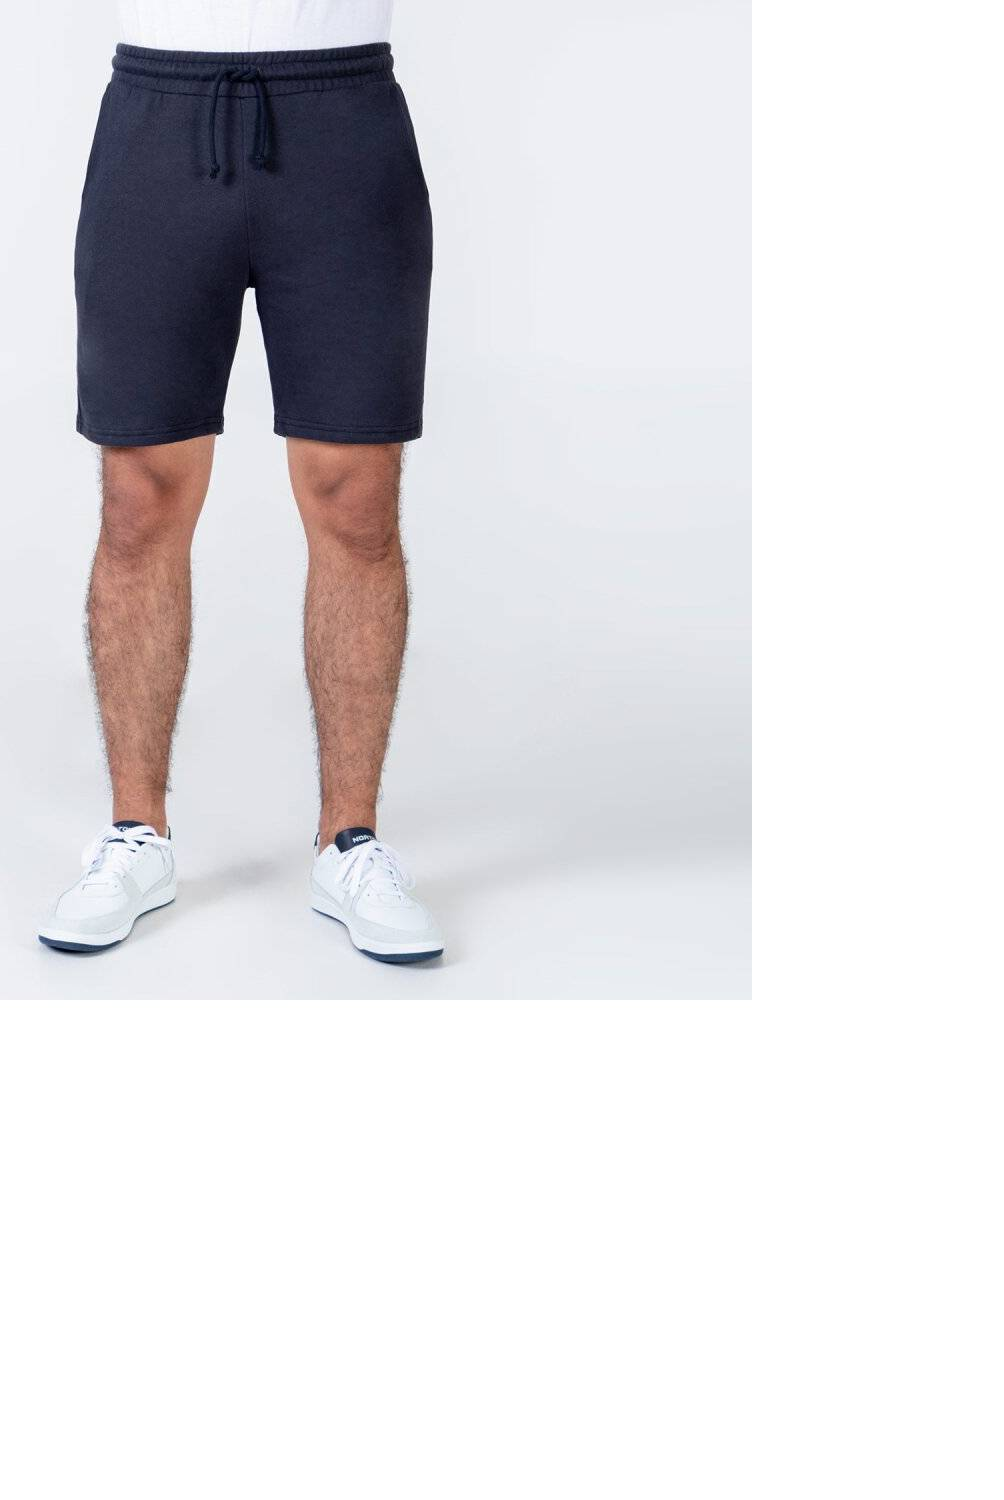 FITS MEN - Shorts French Terry Hombre